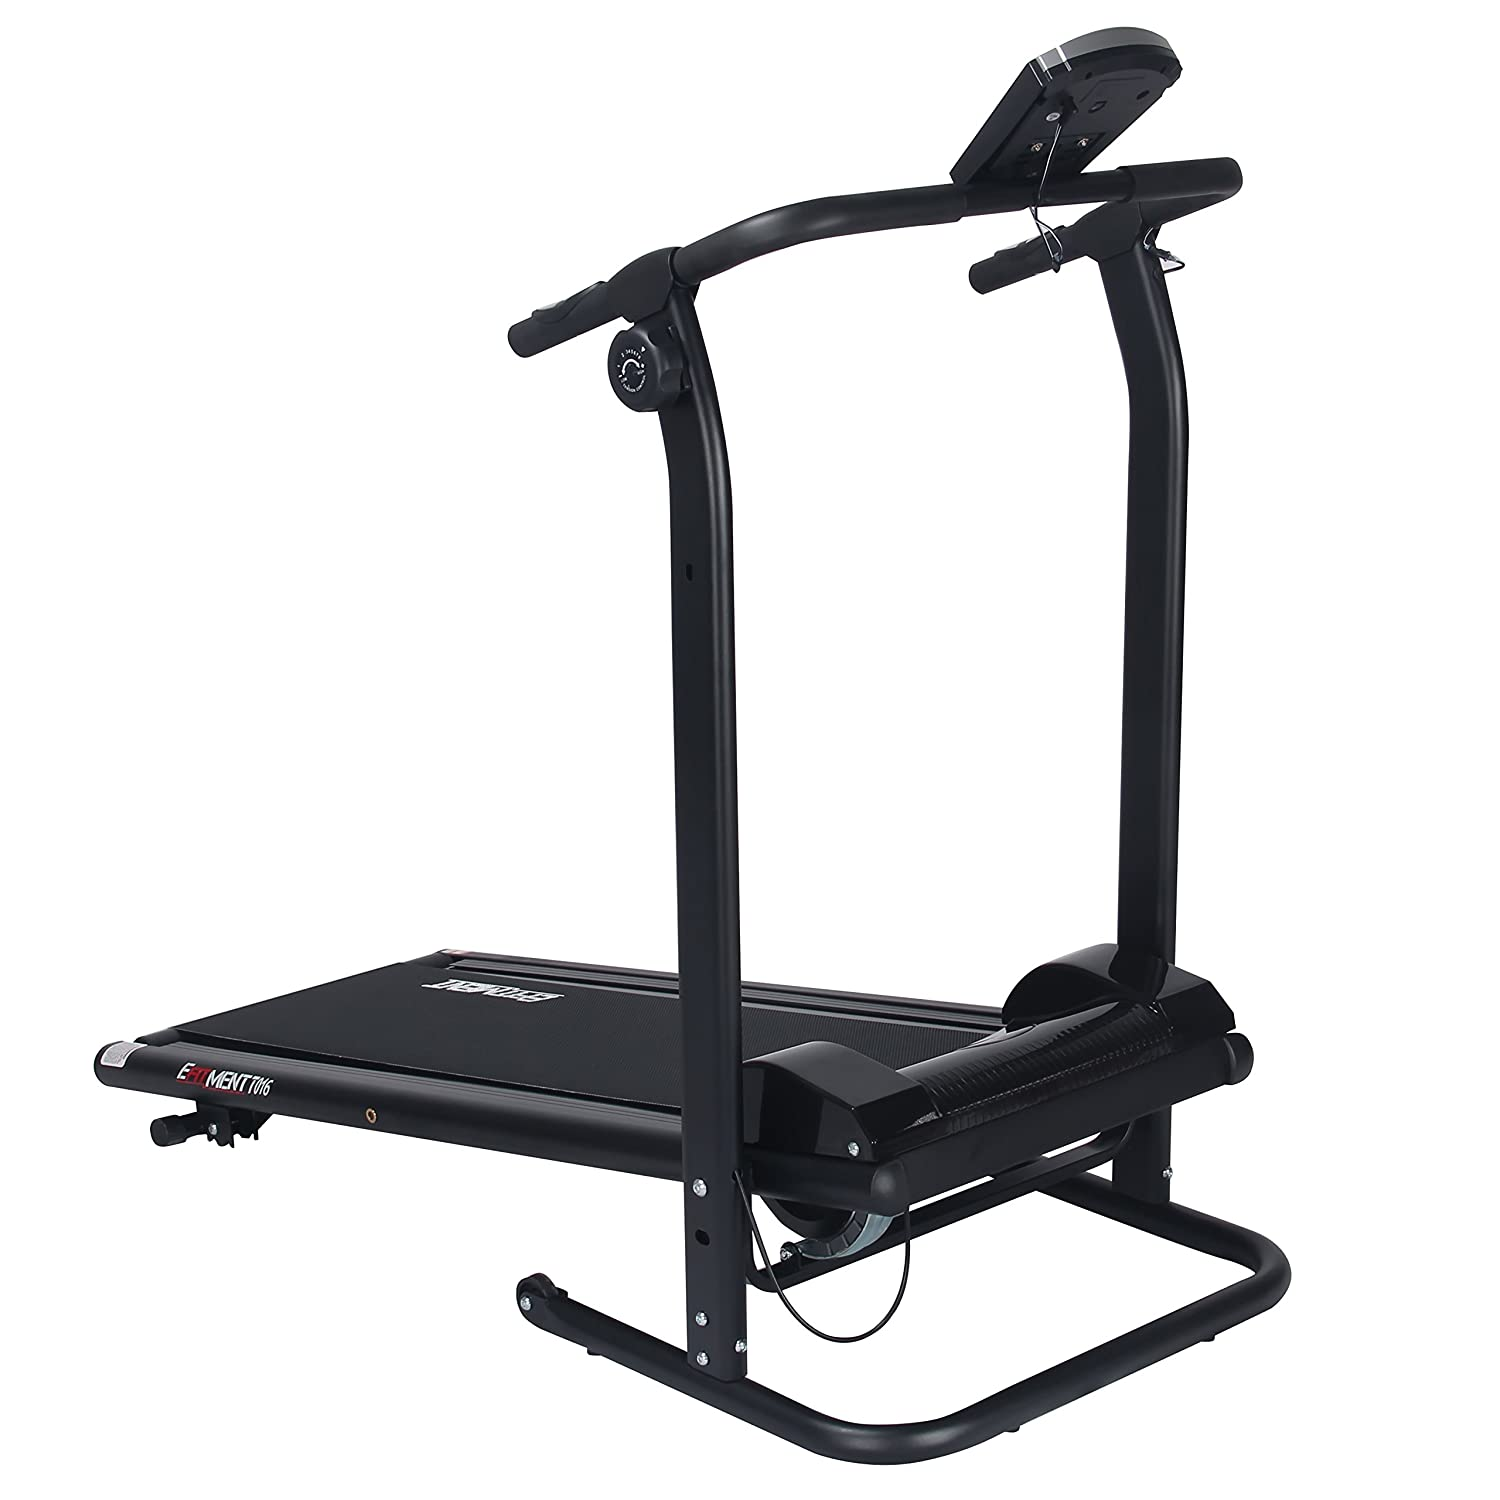 Efitment T016 Manual Treadmill Review